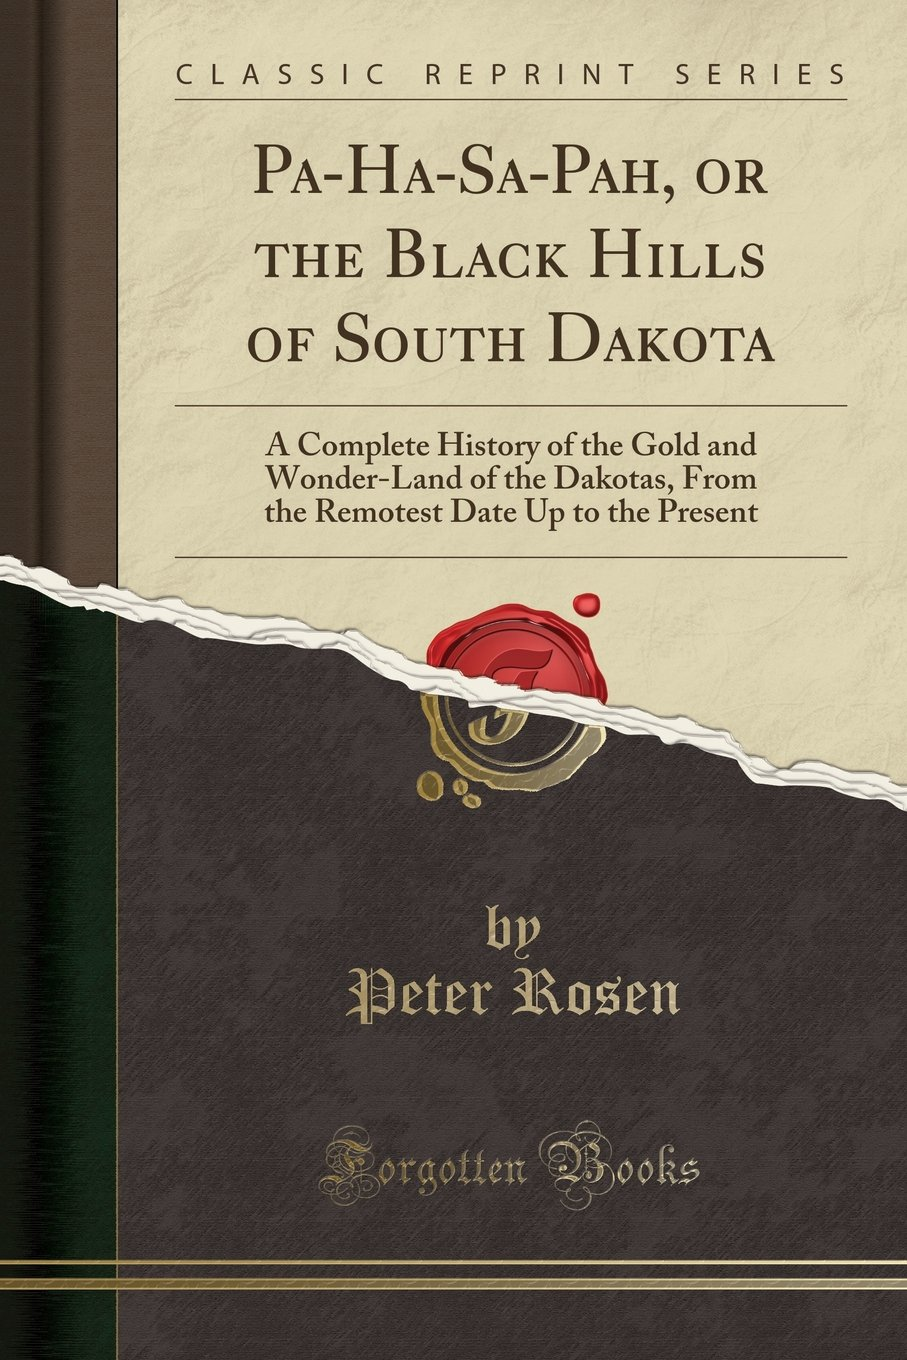 Download Pa-Ha-Sa-Pah, or the Black Hills of South Dakota: A Complete History of the Gold and Wonder-Land of the Dakotas, From the Remotest Date Up to the Present (Classic Reprint) PDF